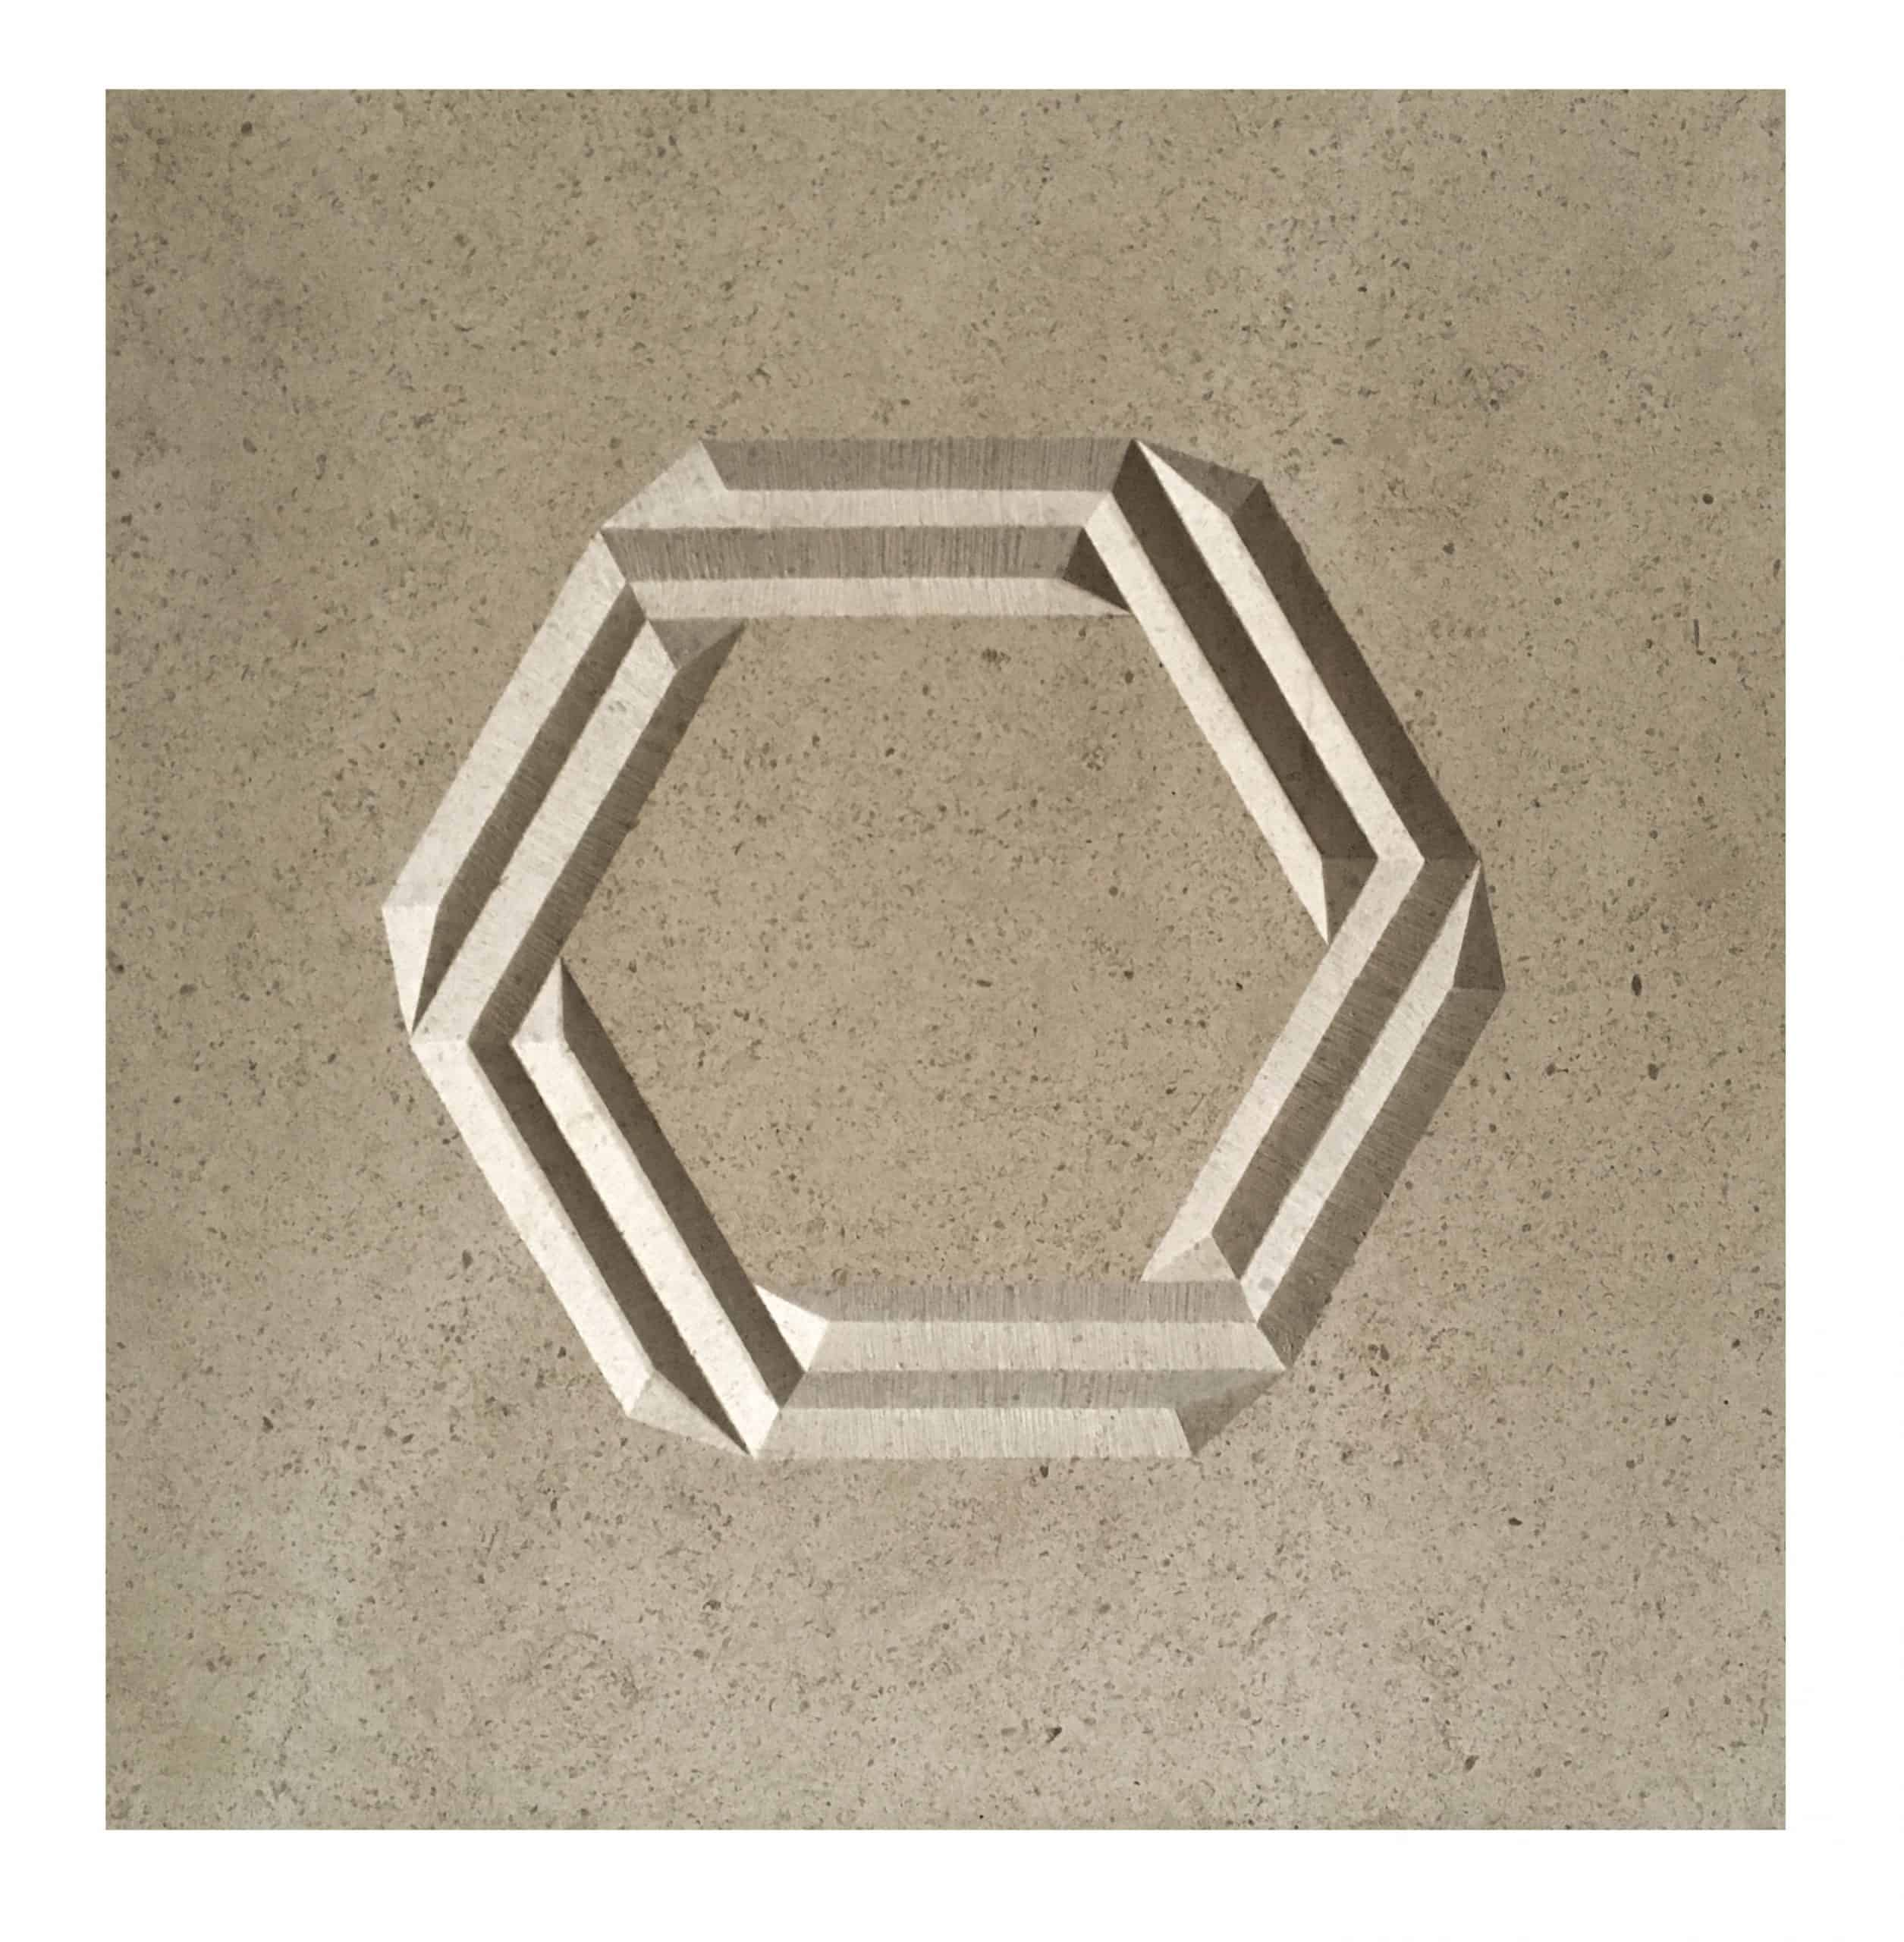 Simple hexagon carved into a buff coloured stone